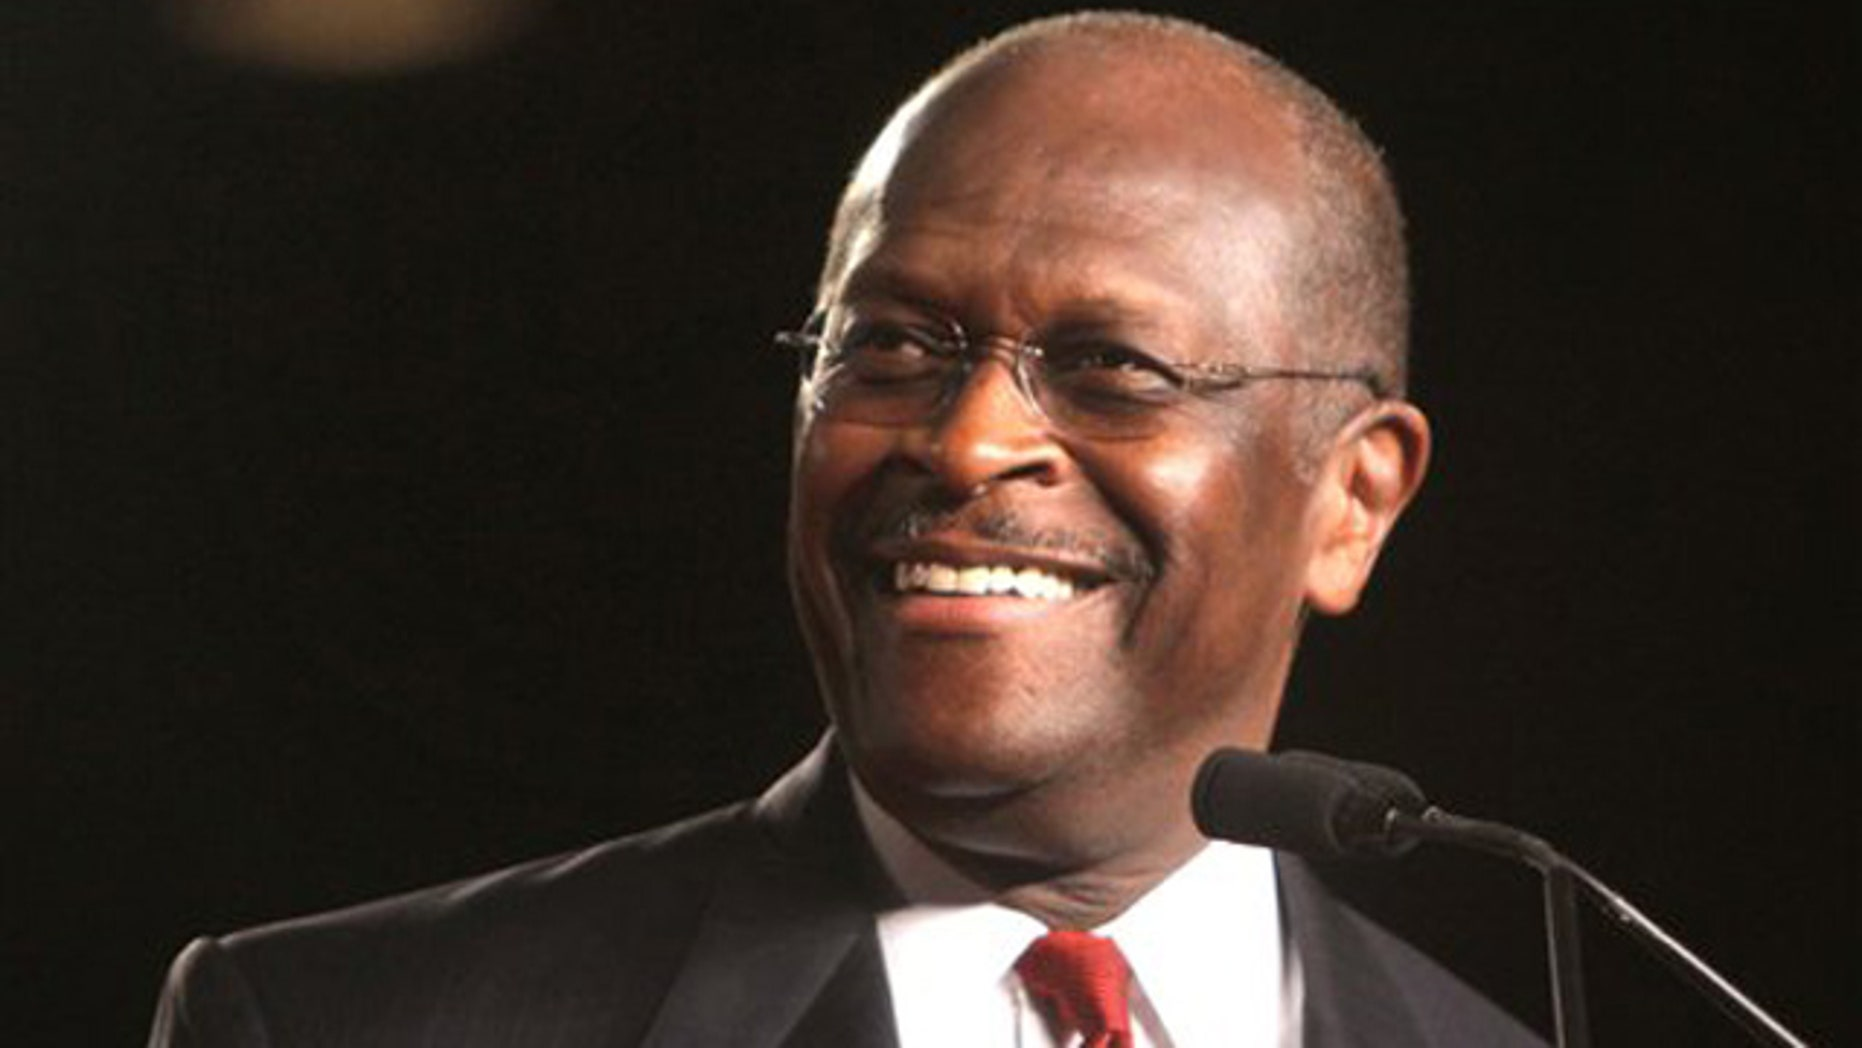 Republican presidential candidate Herman Cain arrives onstage to address the Conservative Political Action Conference (CPAC) at the Orange County Convention Center in Orlando, Fla., Friday, Sept. 23, 2011.